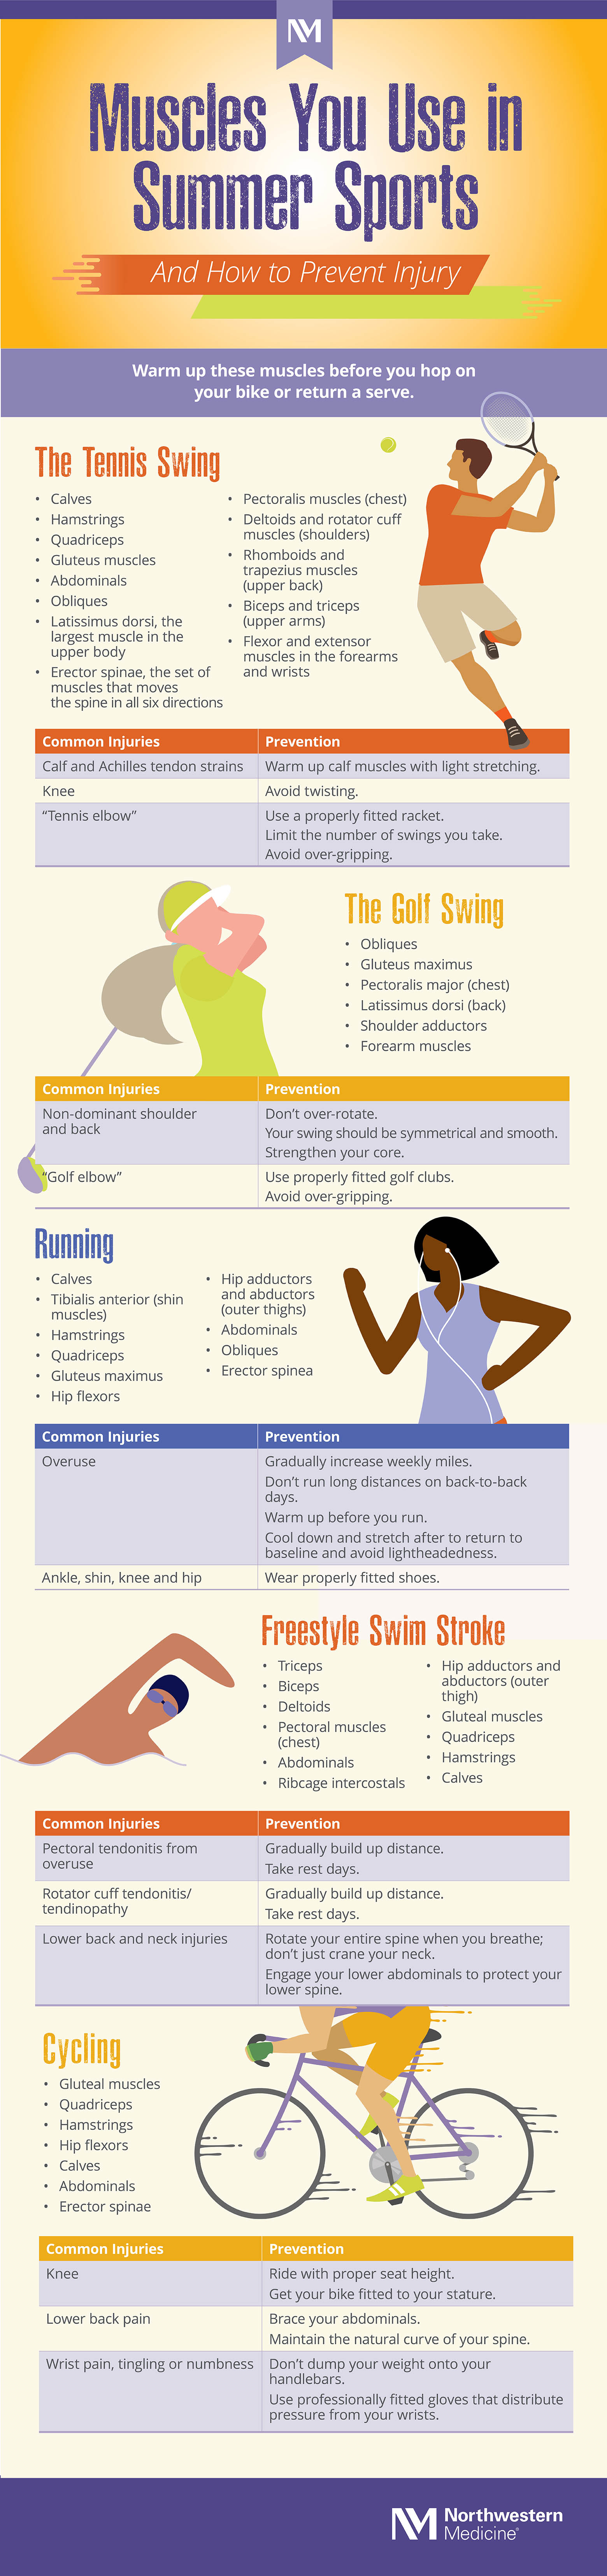 nm-muscles-you-use-in-summer-sports_Infographic